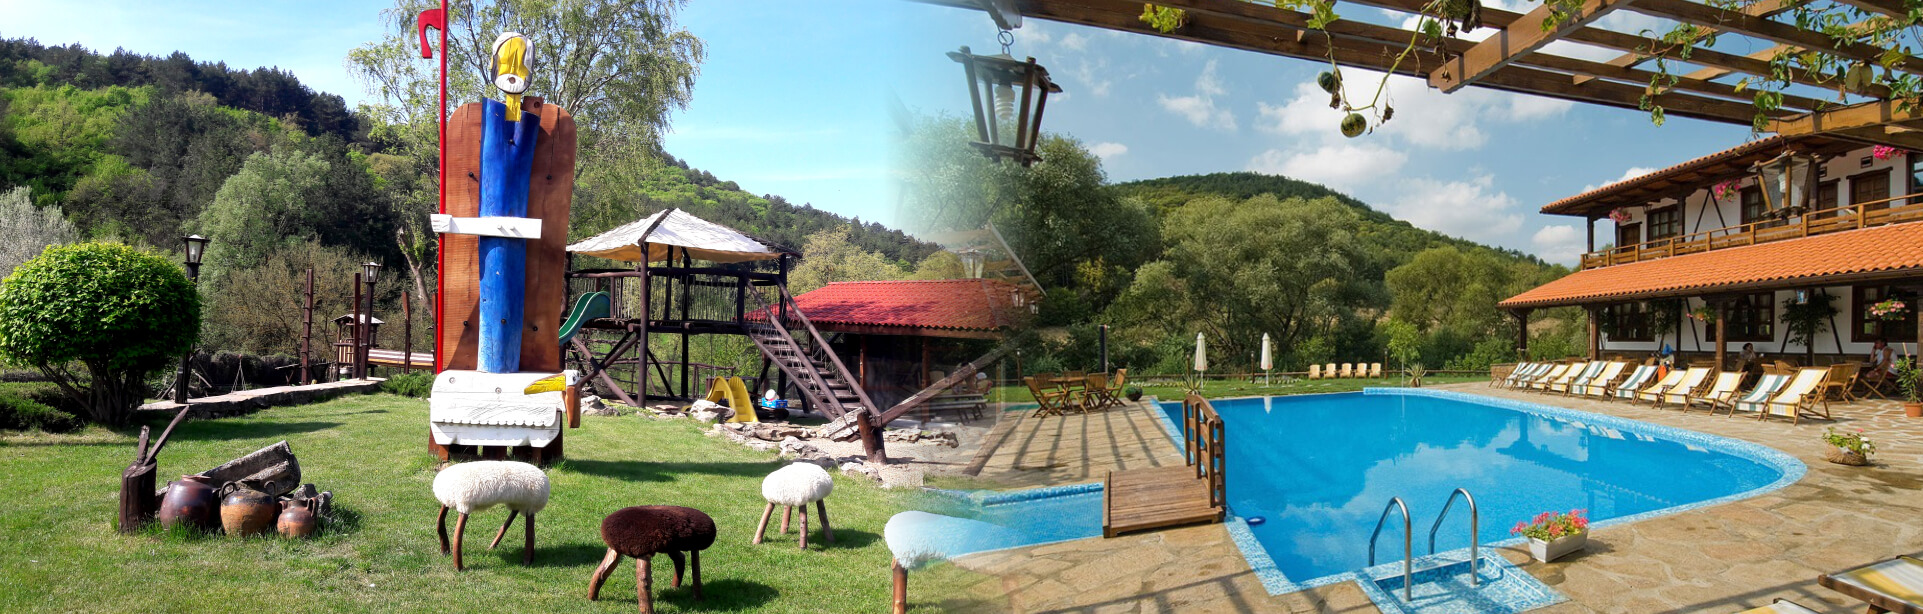 Tourist Complex Barite - Bulgaria, Varna, rural tourism, accommodation, folklore, folk-style restaurant, dams, fishing, ecotourism, eco, fossil forest